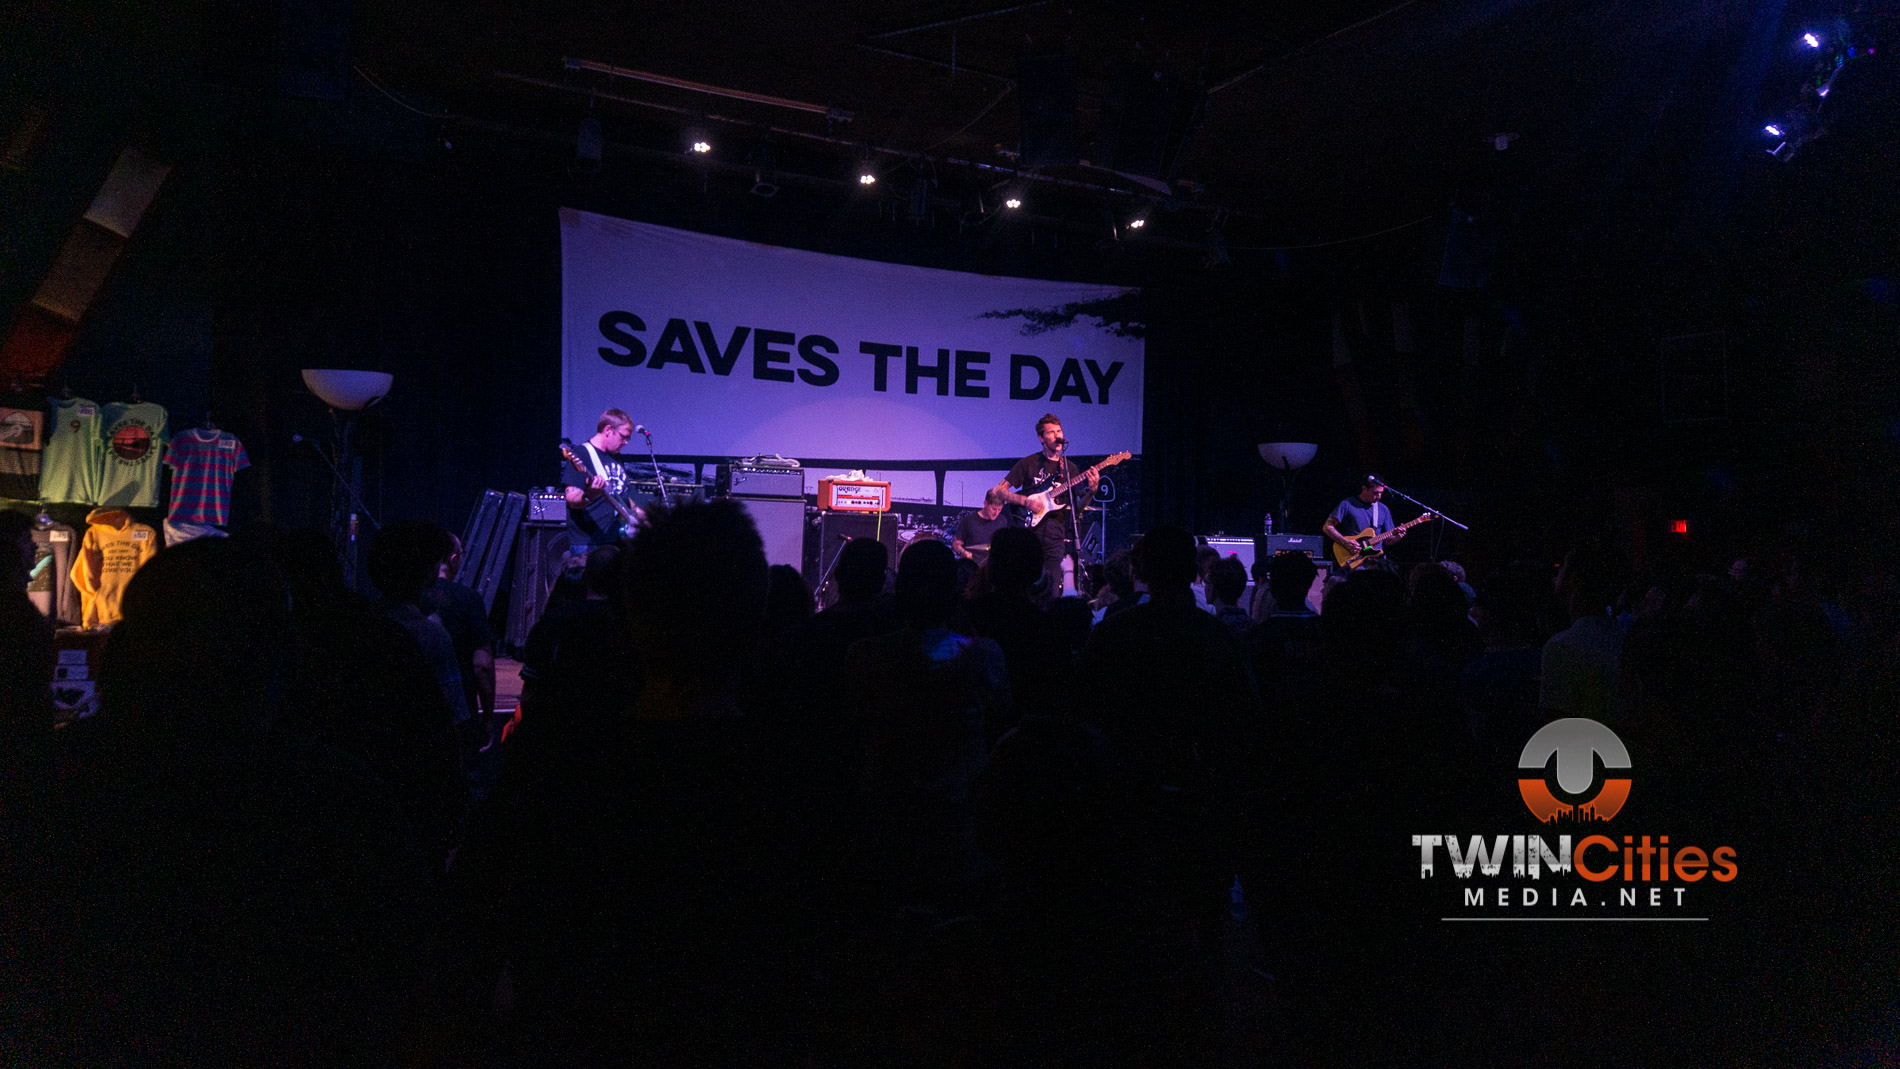 Saves-the-day-3